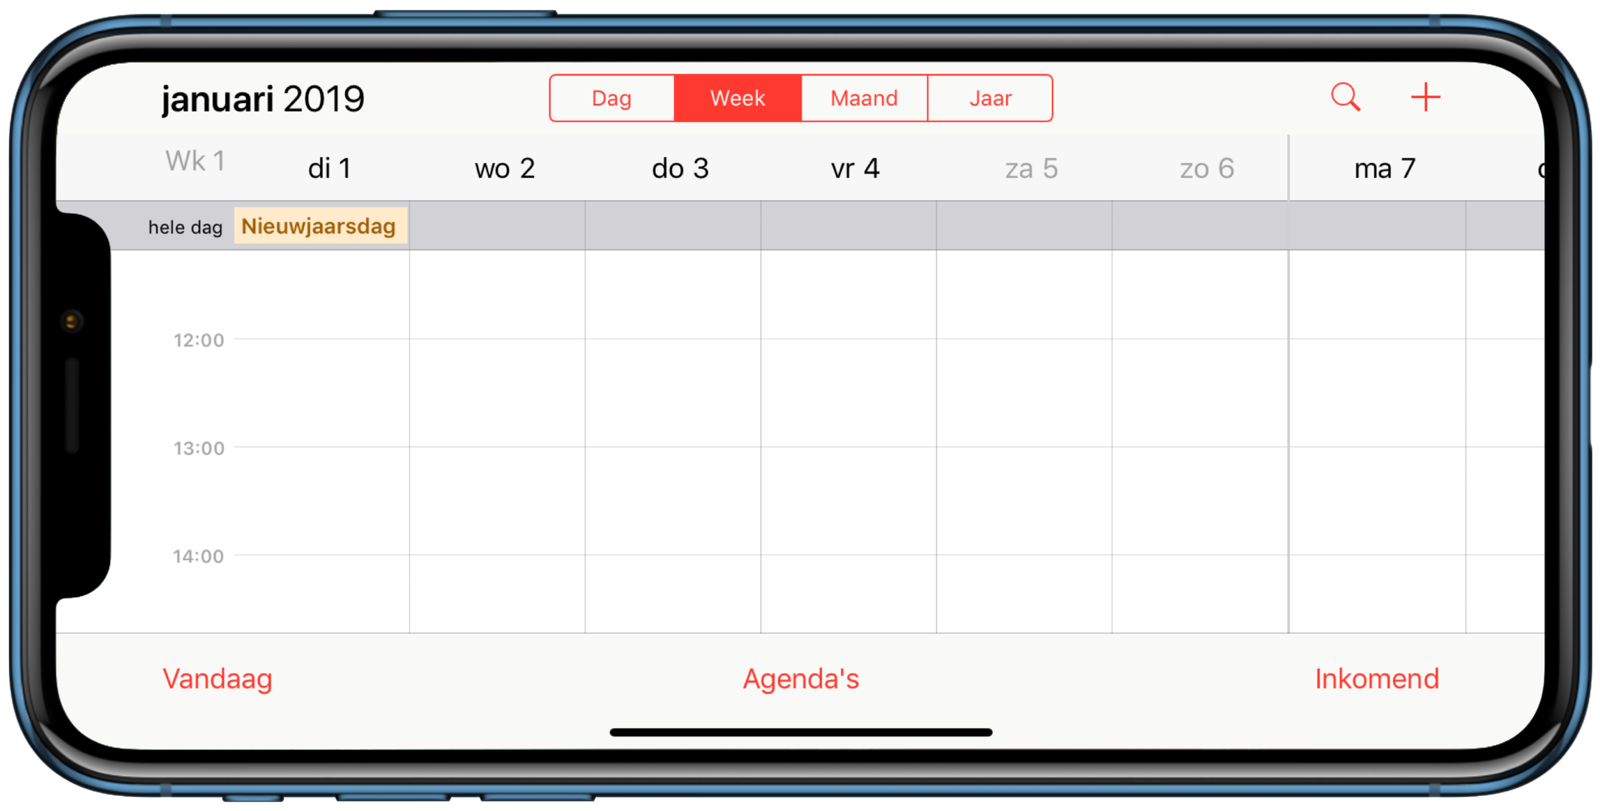 Weekweergave in Agenda-app.